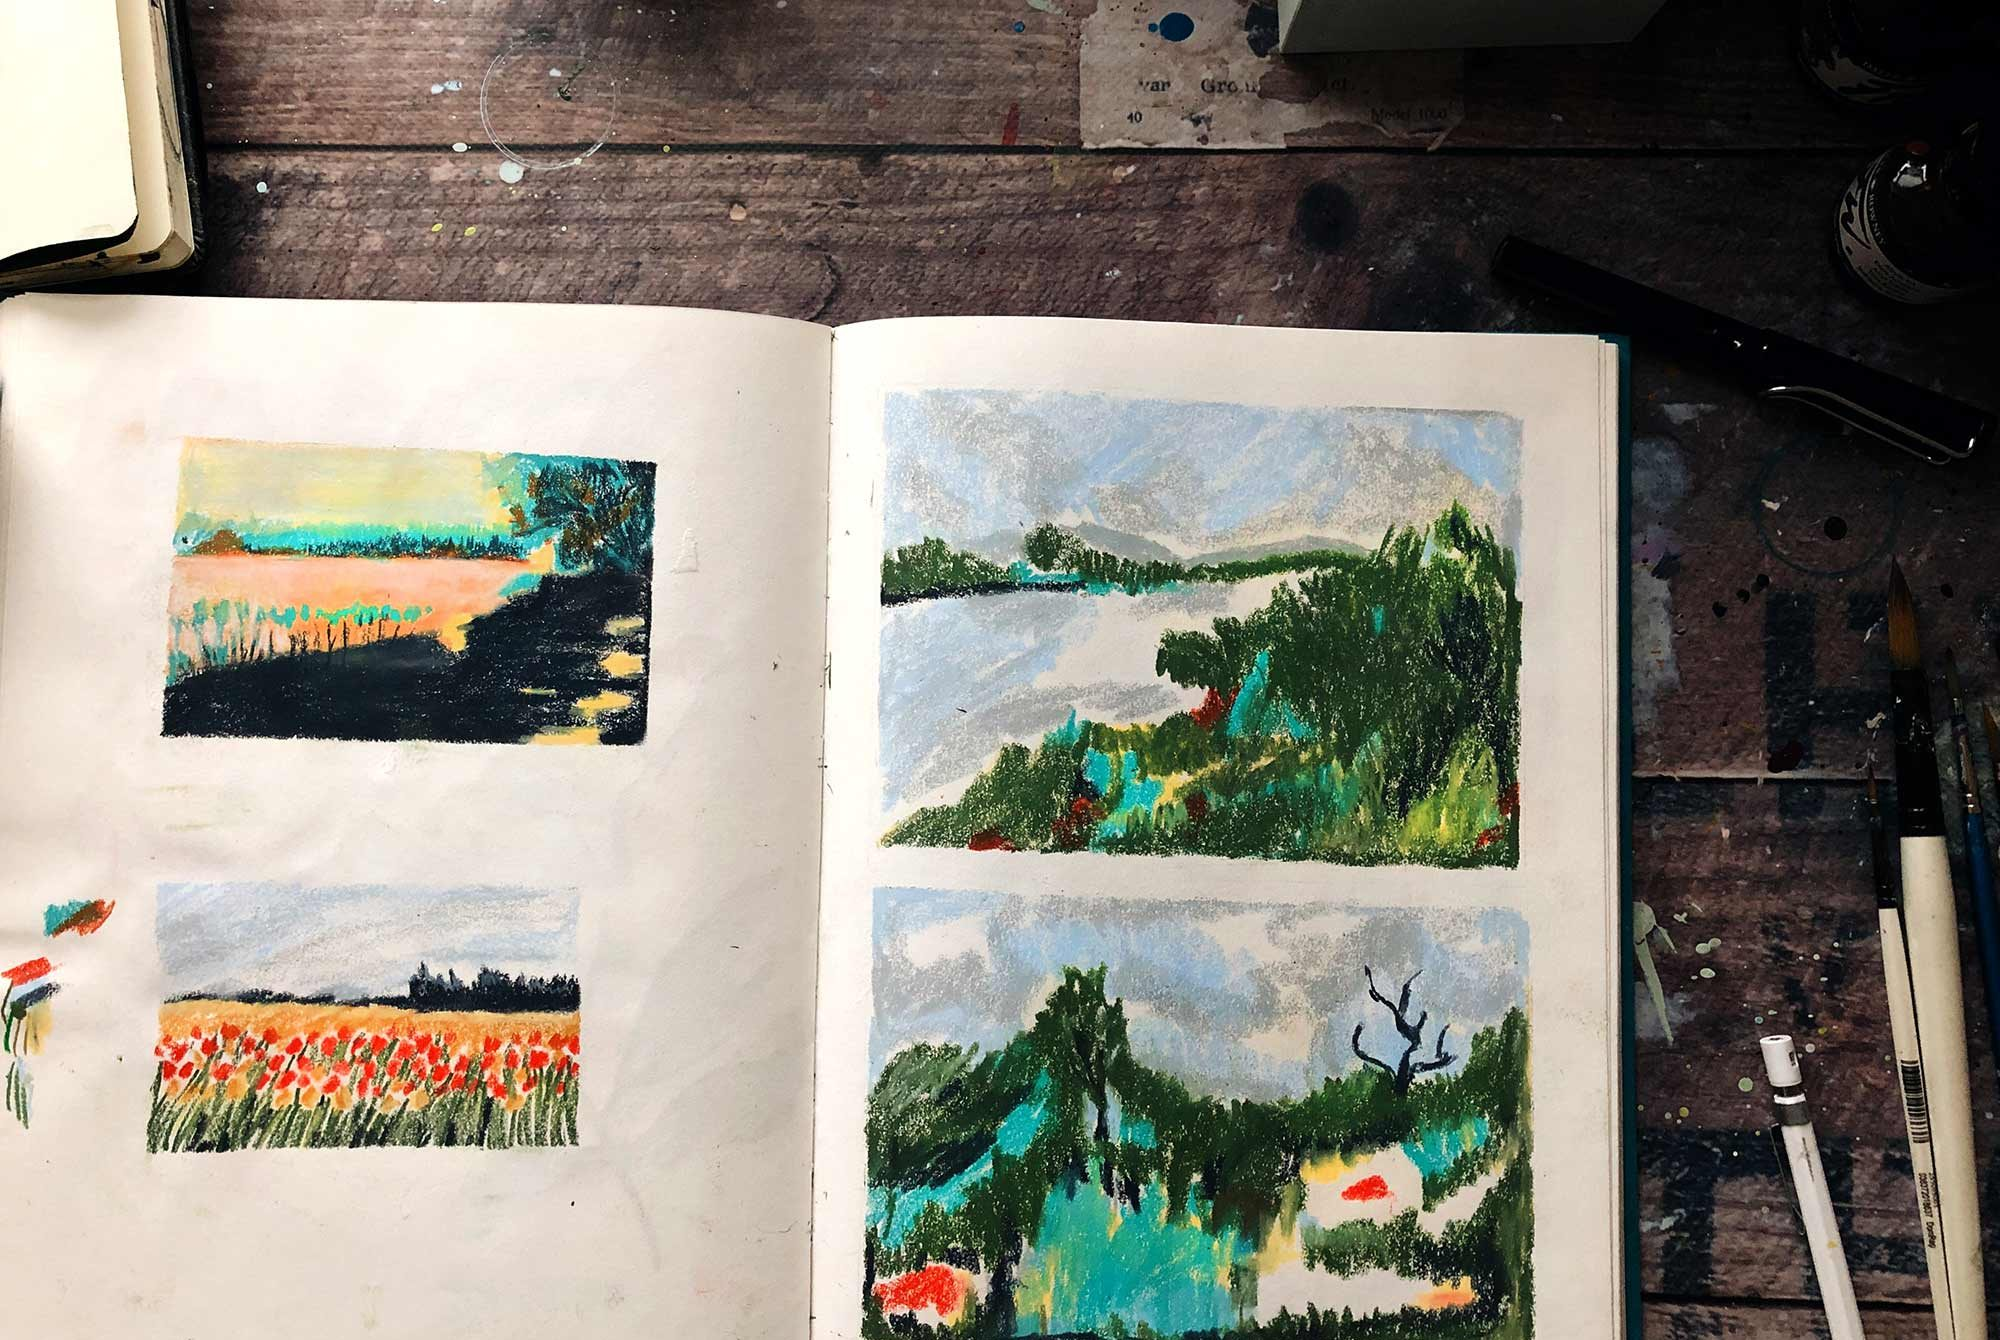 large sketchbook depicting different landscapes in Wax Pastels